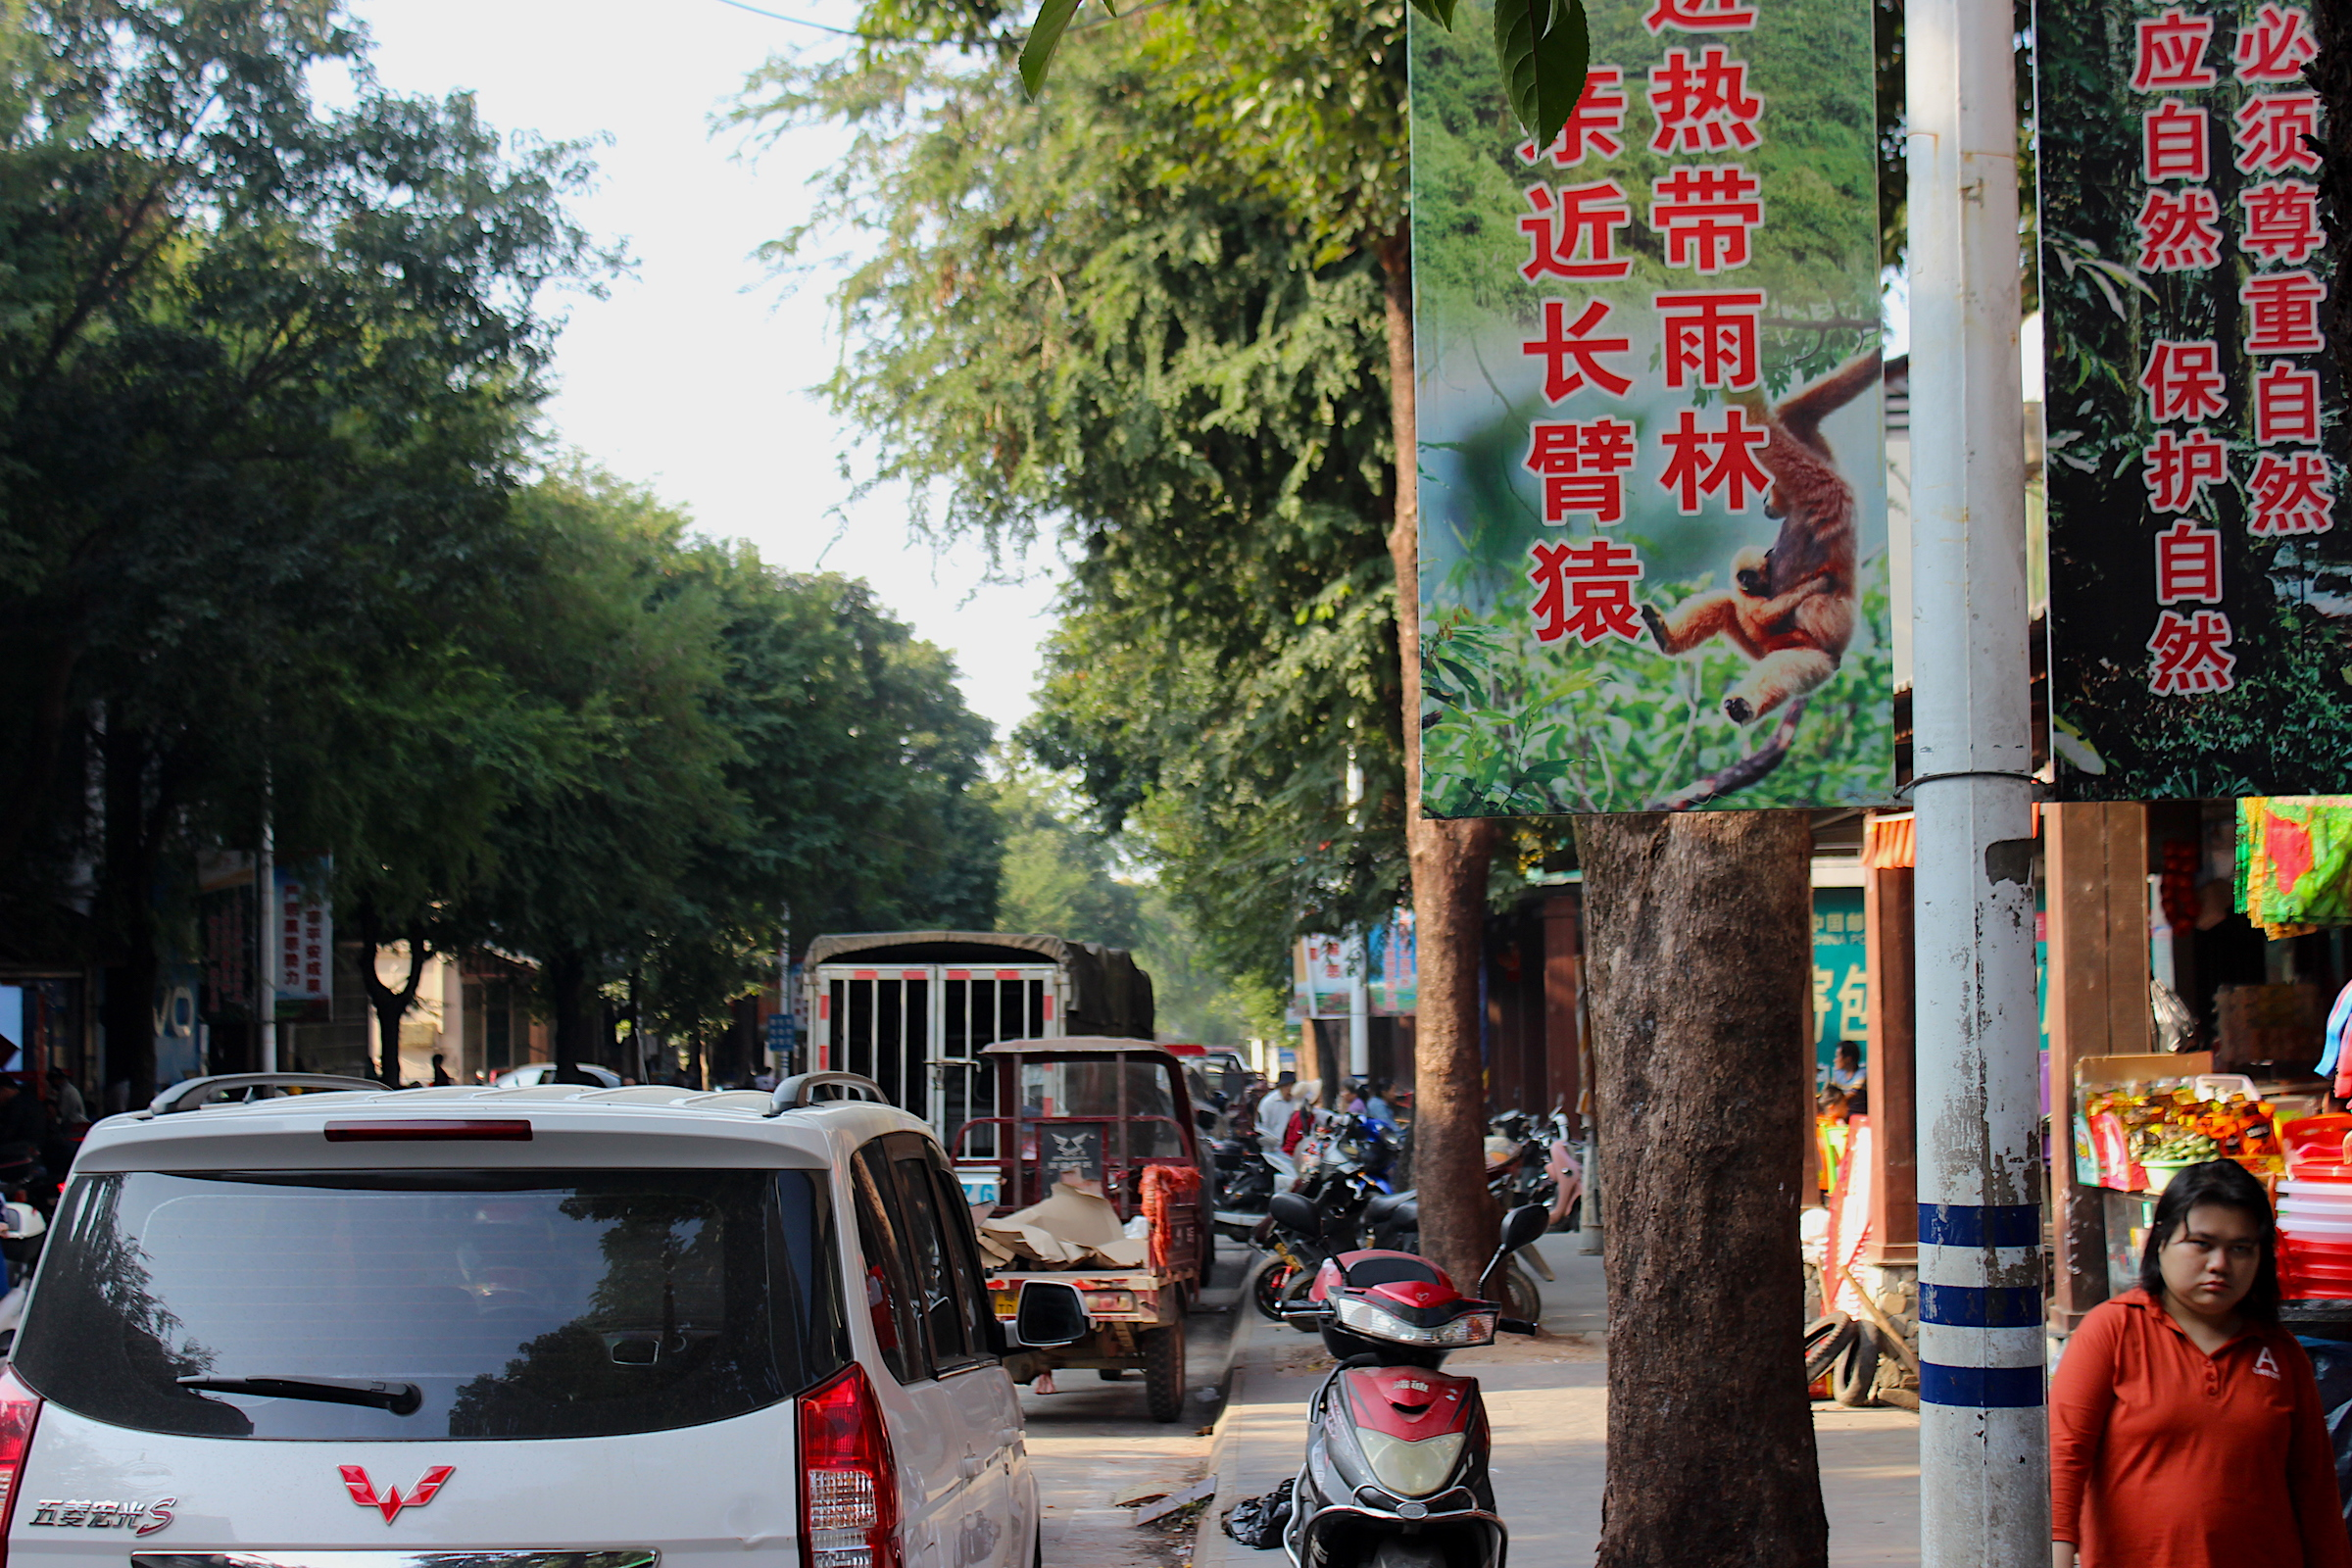 Banners in the town of Baotie, which flanks Bawangling National Nature Reserve on the west, implore people to respect and protect nature. Photograph by James Dinneen